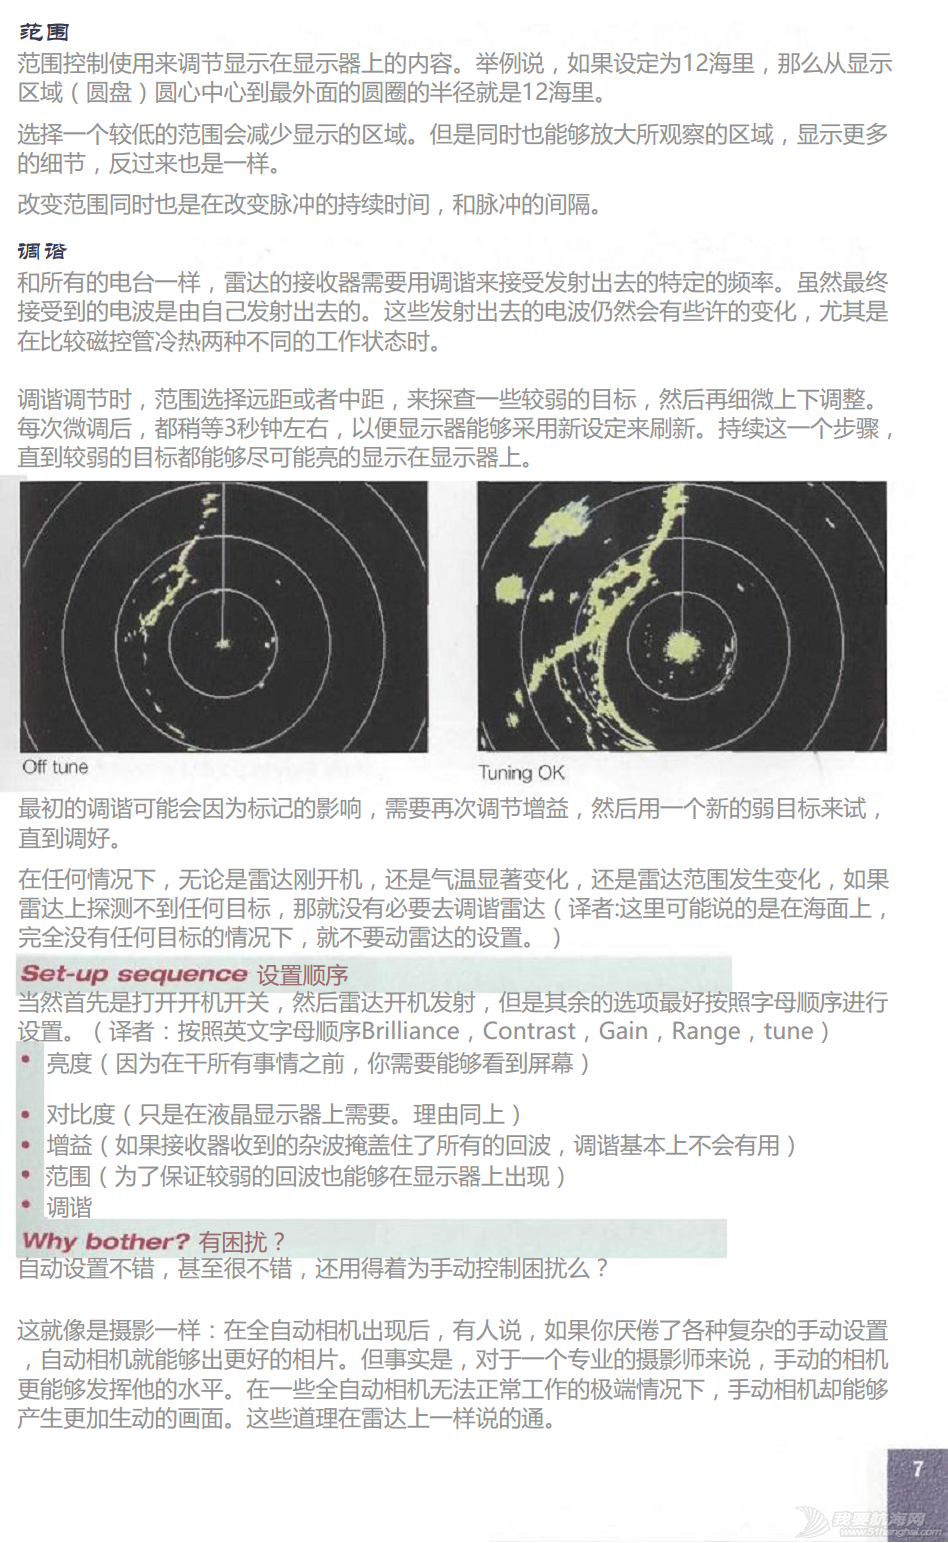 小伙伴,英文版,著作权,中文,帆船 ©RYA《雷达使用简介》An introduction to Radar.完稿 9